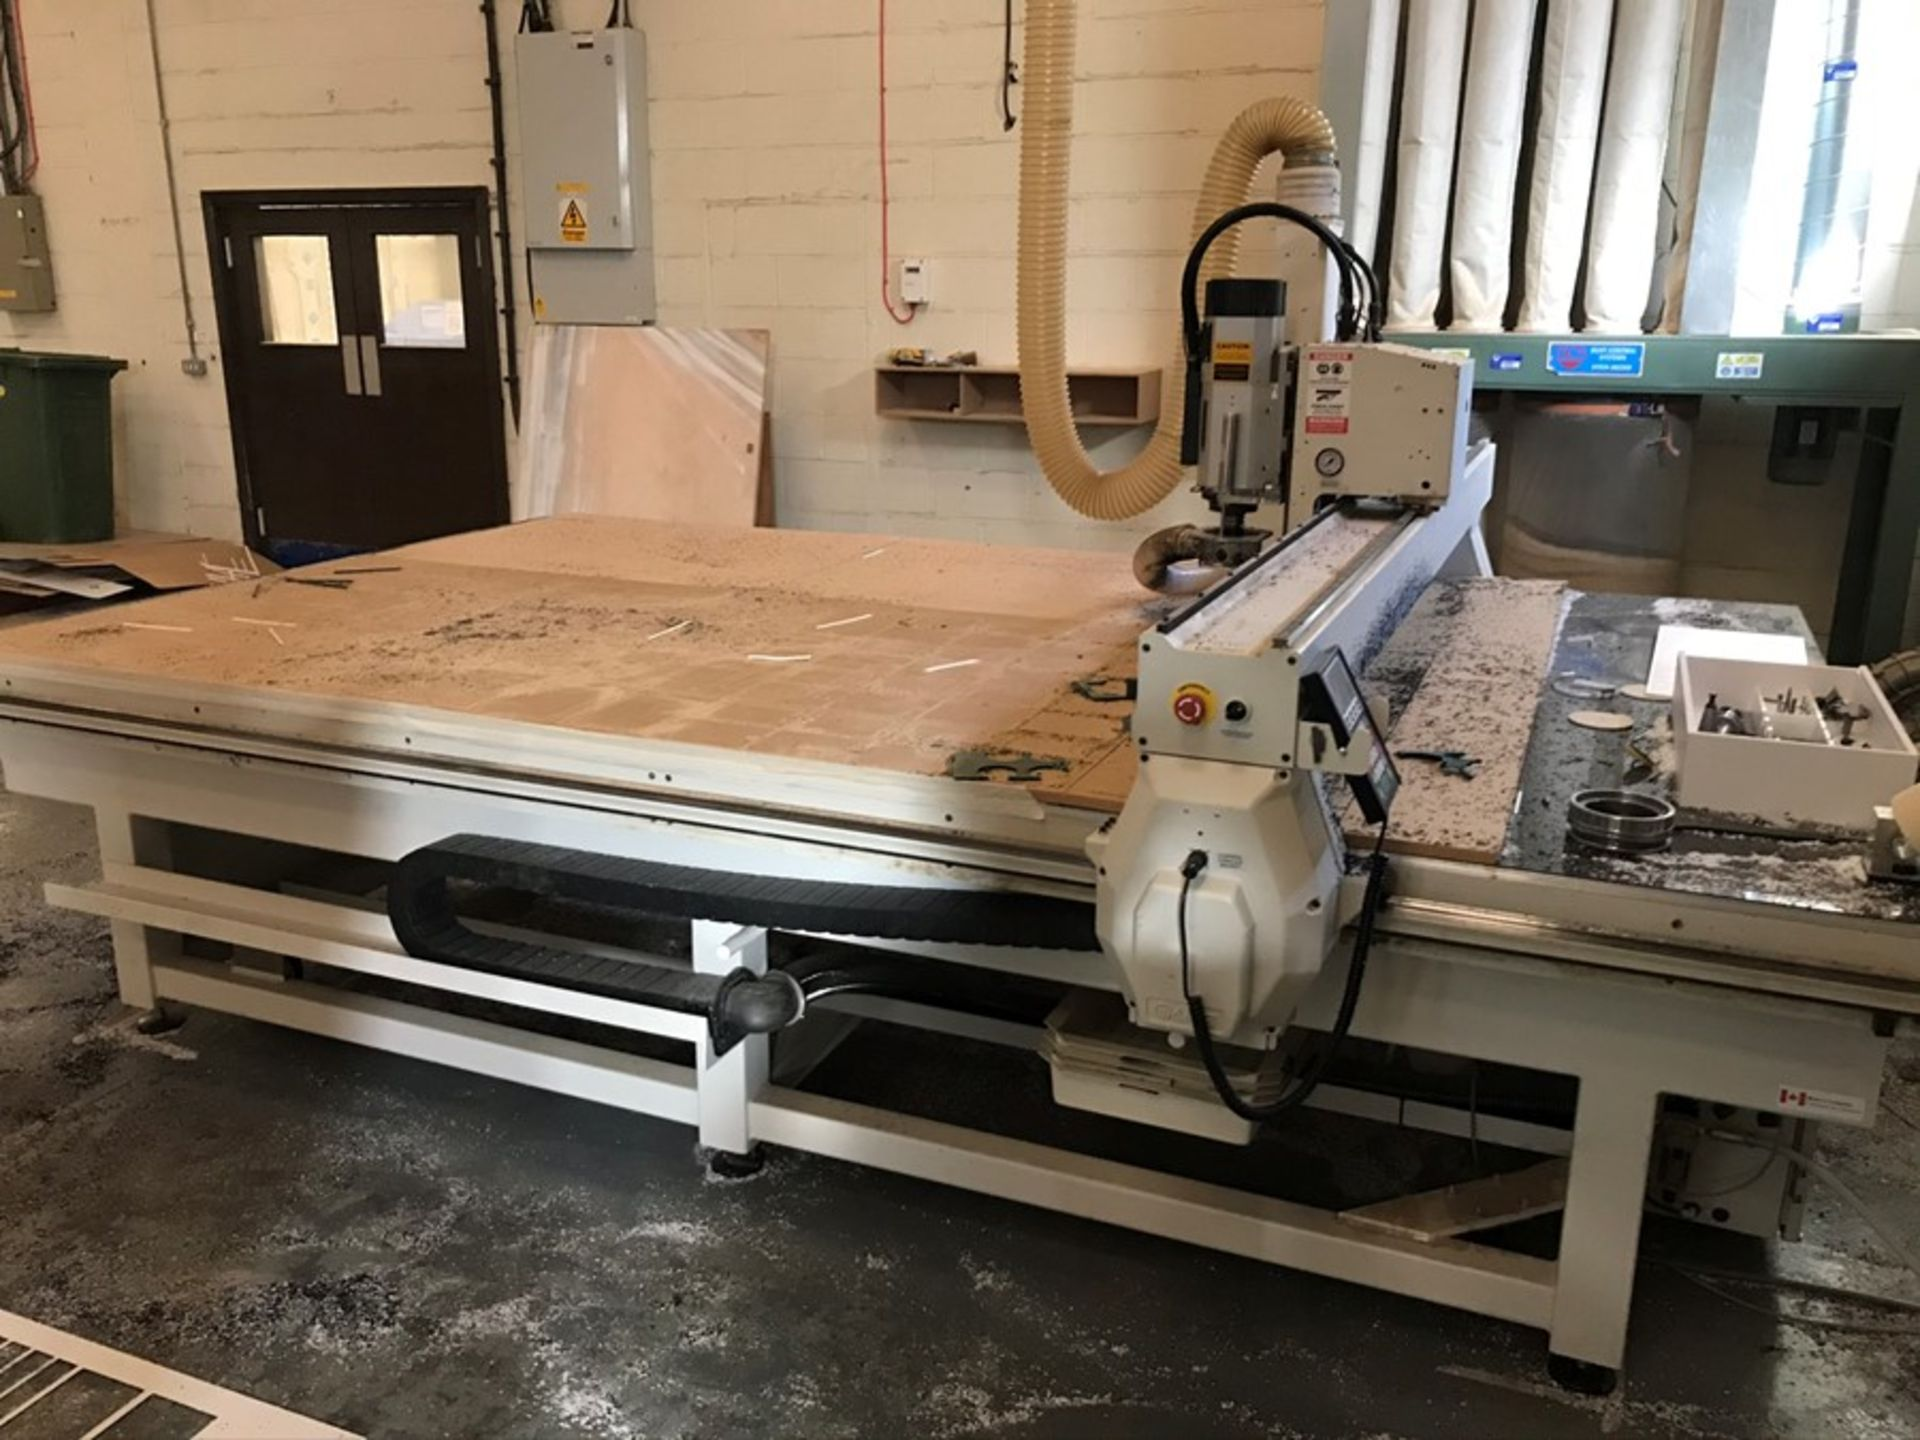 AXYZ 6010 ATC 7G CNC router (2015) - Image 12 of 20